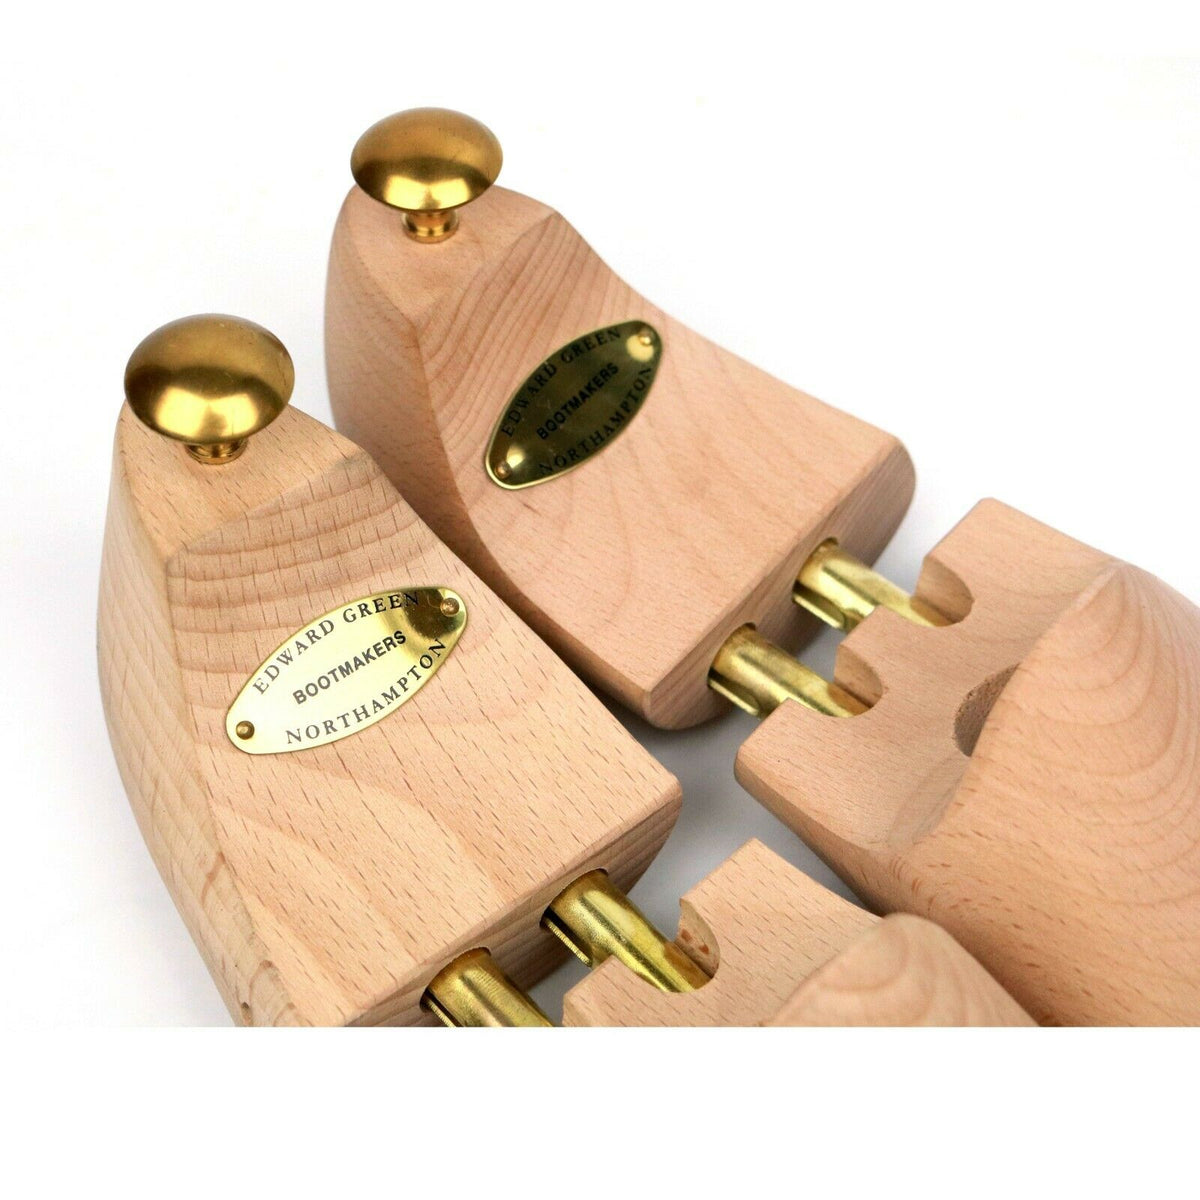 Edward Green Wooden Shoe Trees UK 10.5 E